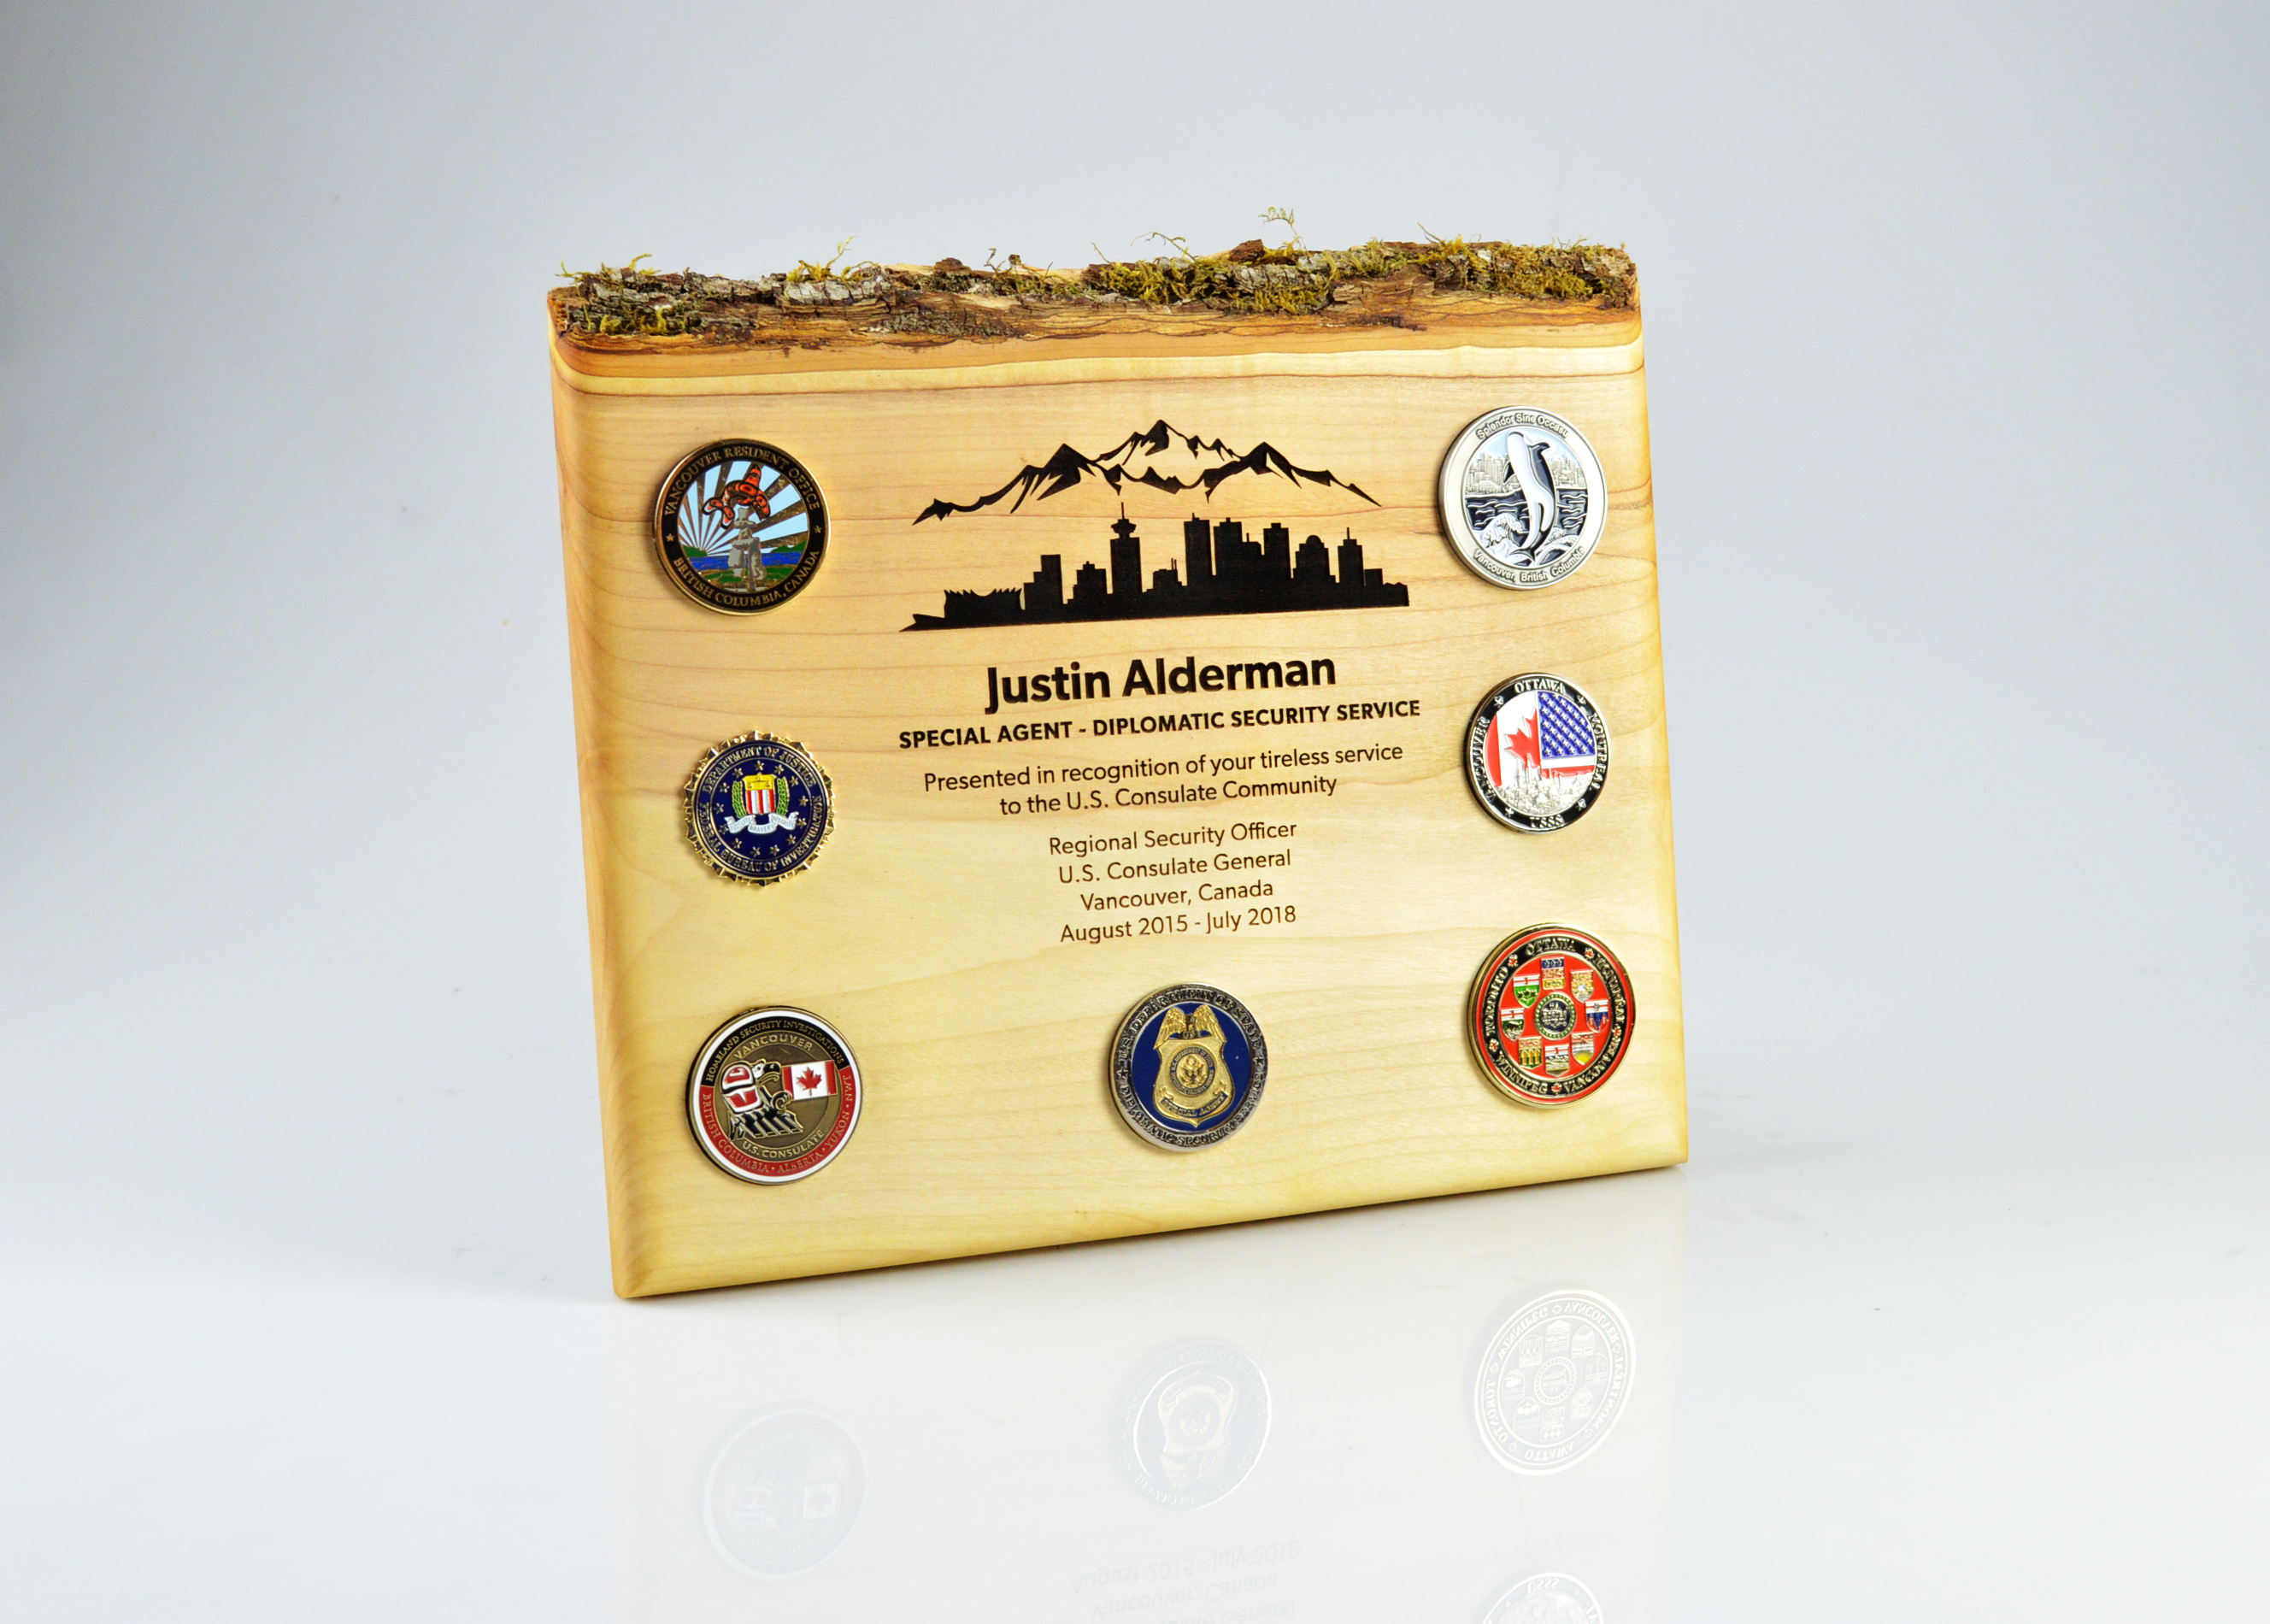 custom-award_sustainable_laser-engraved_salvaged-wood_civil-service_recognition-award_medals_usa